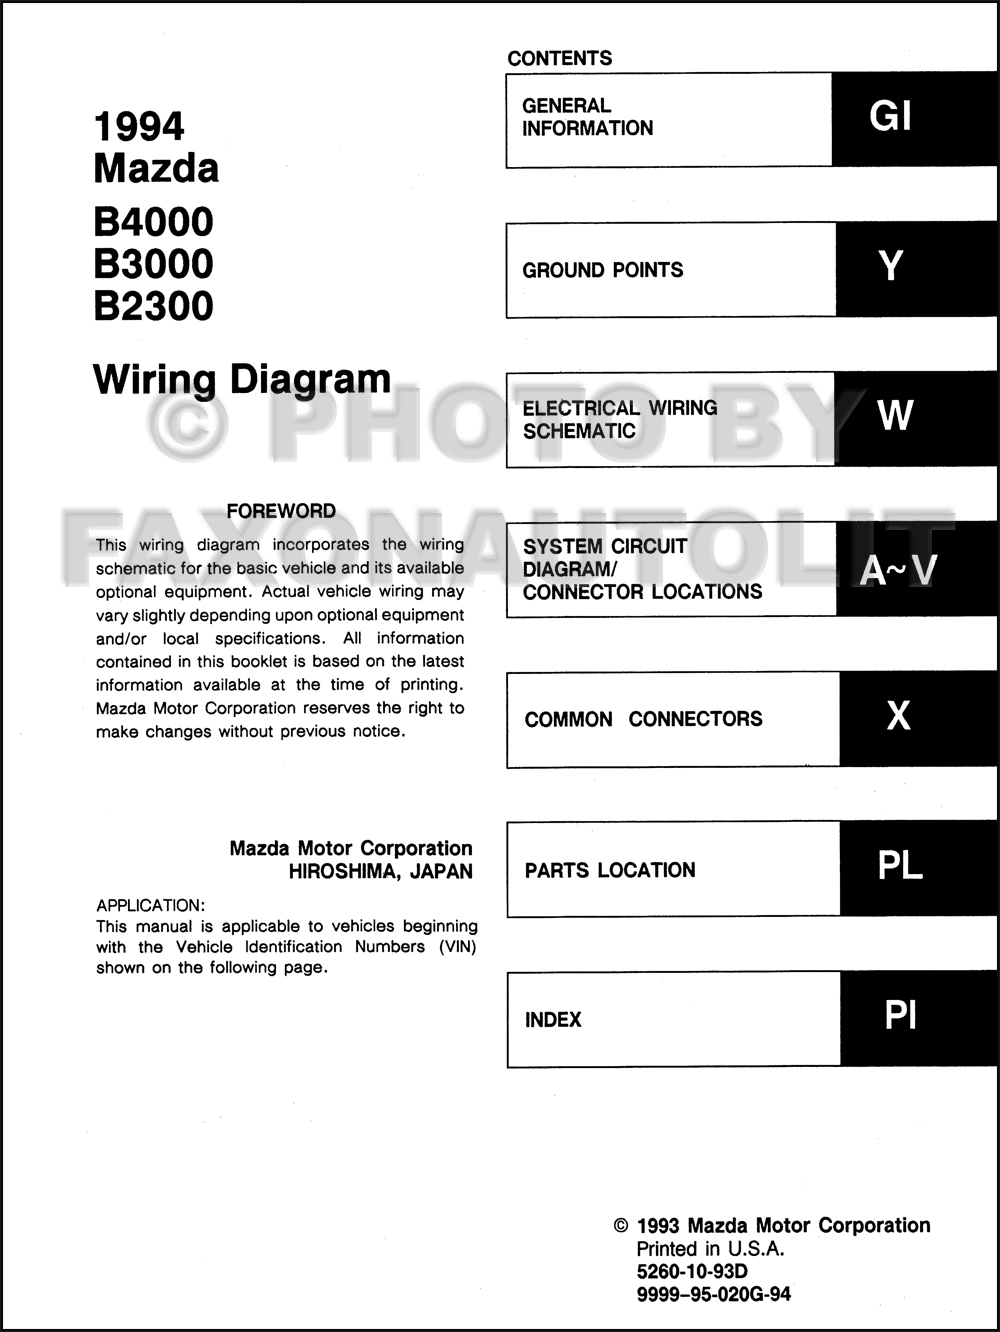 1994MazdaB4000B3000B23000OWD TOC 1994 mazda b4000 b3000 b2300 pickup truck wiring diagram manual mazda b4000 fuse box diagram at creativeand.co